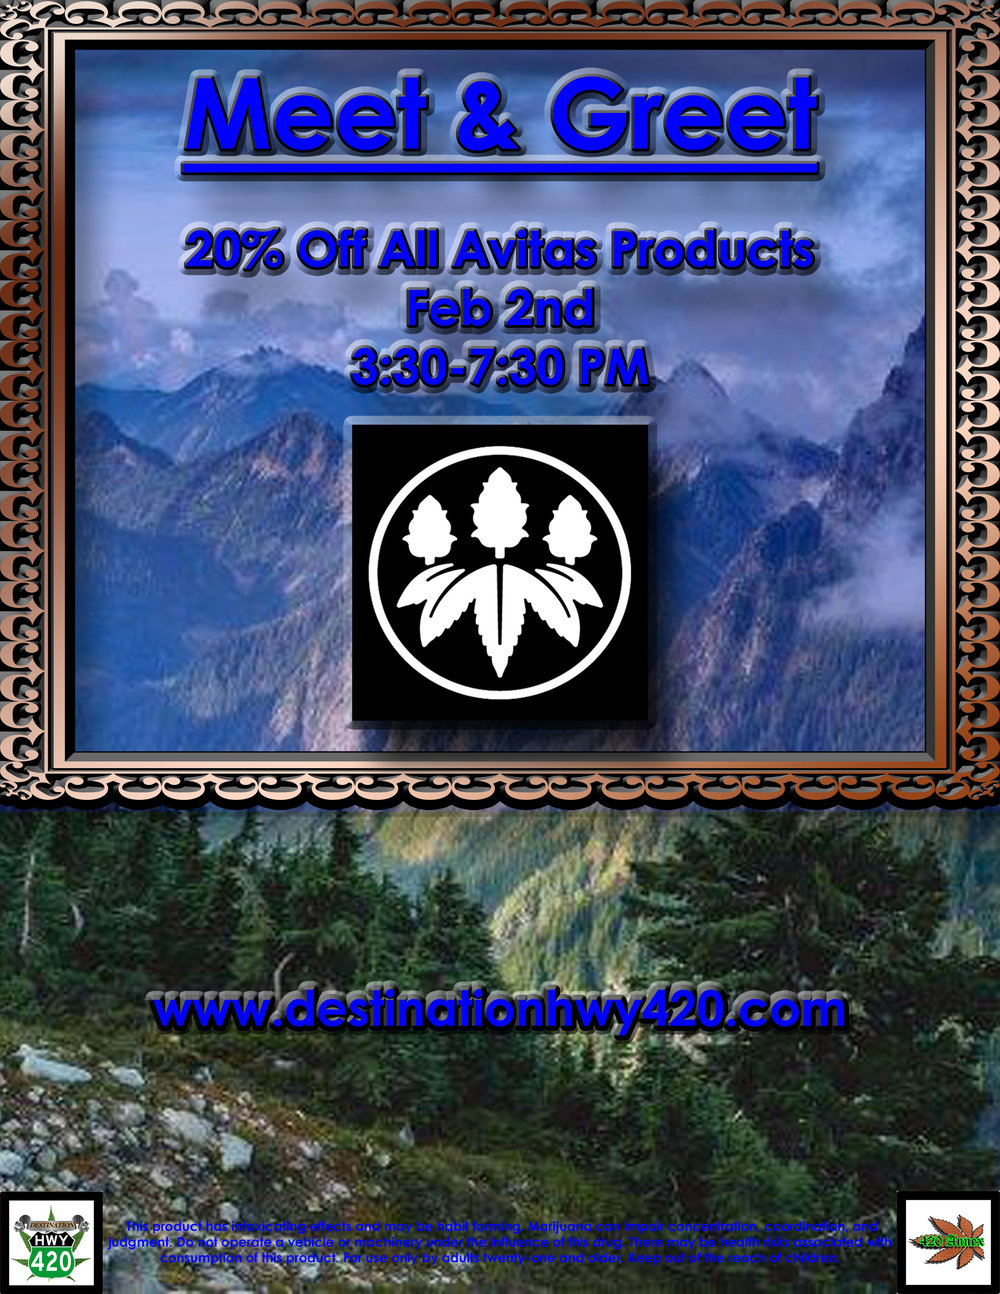 Avitas is one of the cleanest, greenest, and most amazing marijuana producer/processors in Washington State. Destination HWY 420, located in East Bremerton, carries both Avitas and the Hellavated line of cannabis products. If you're near the Kitsap County area, stop by and visit us this Saturday to meet the Avitas team, and pick up some of their clean cannabis products for discounted prices.